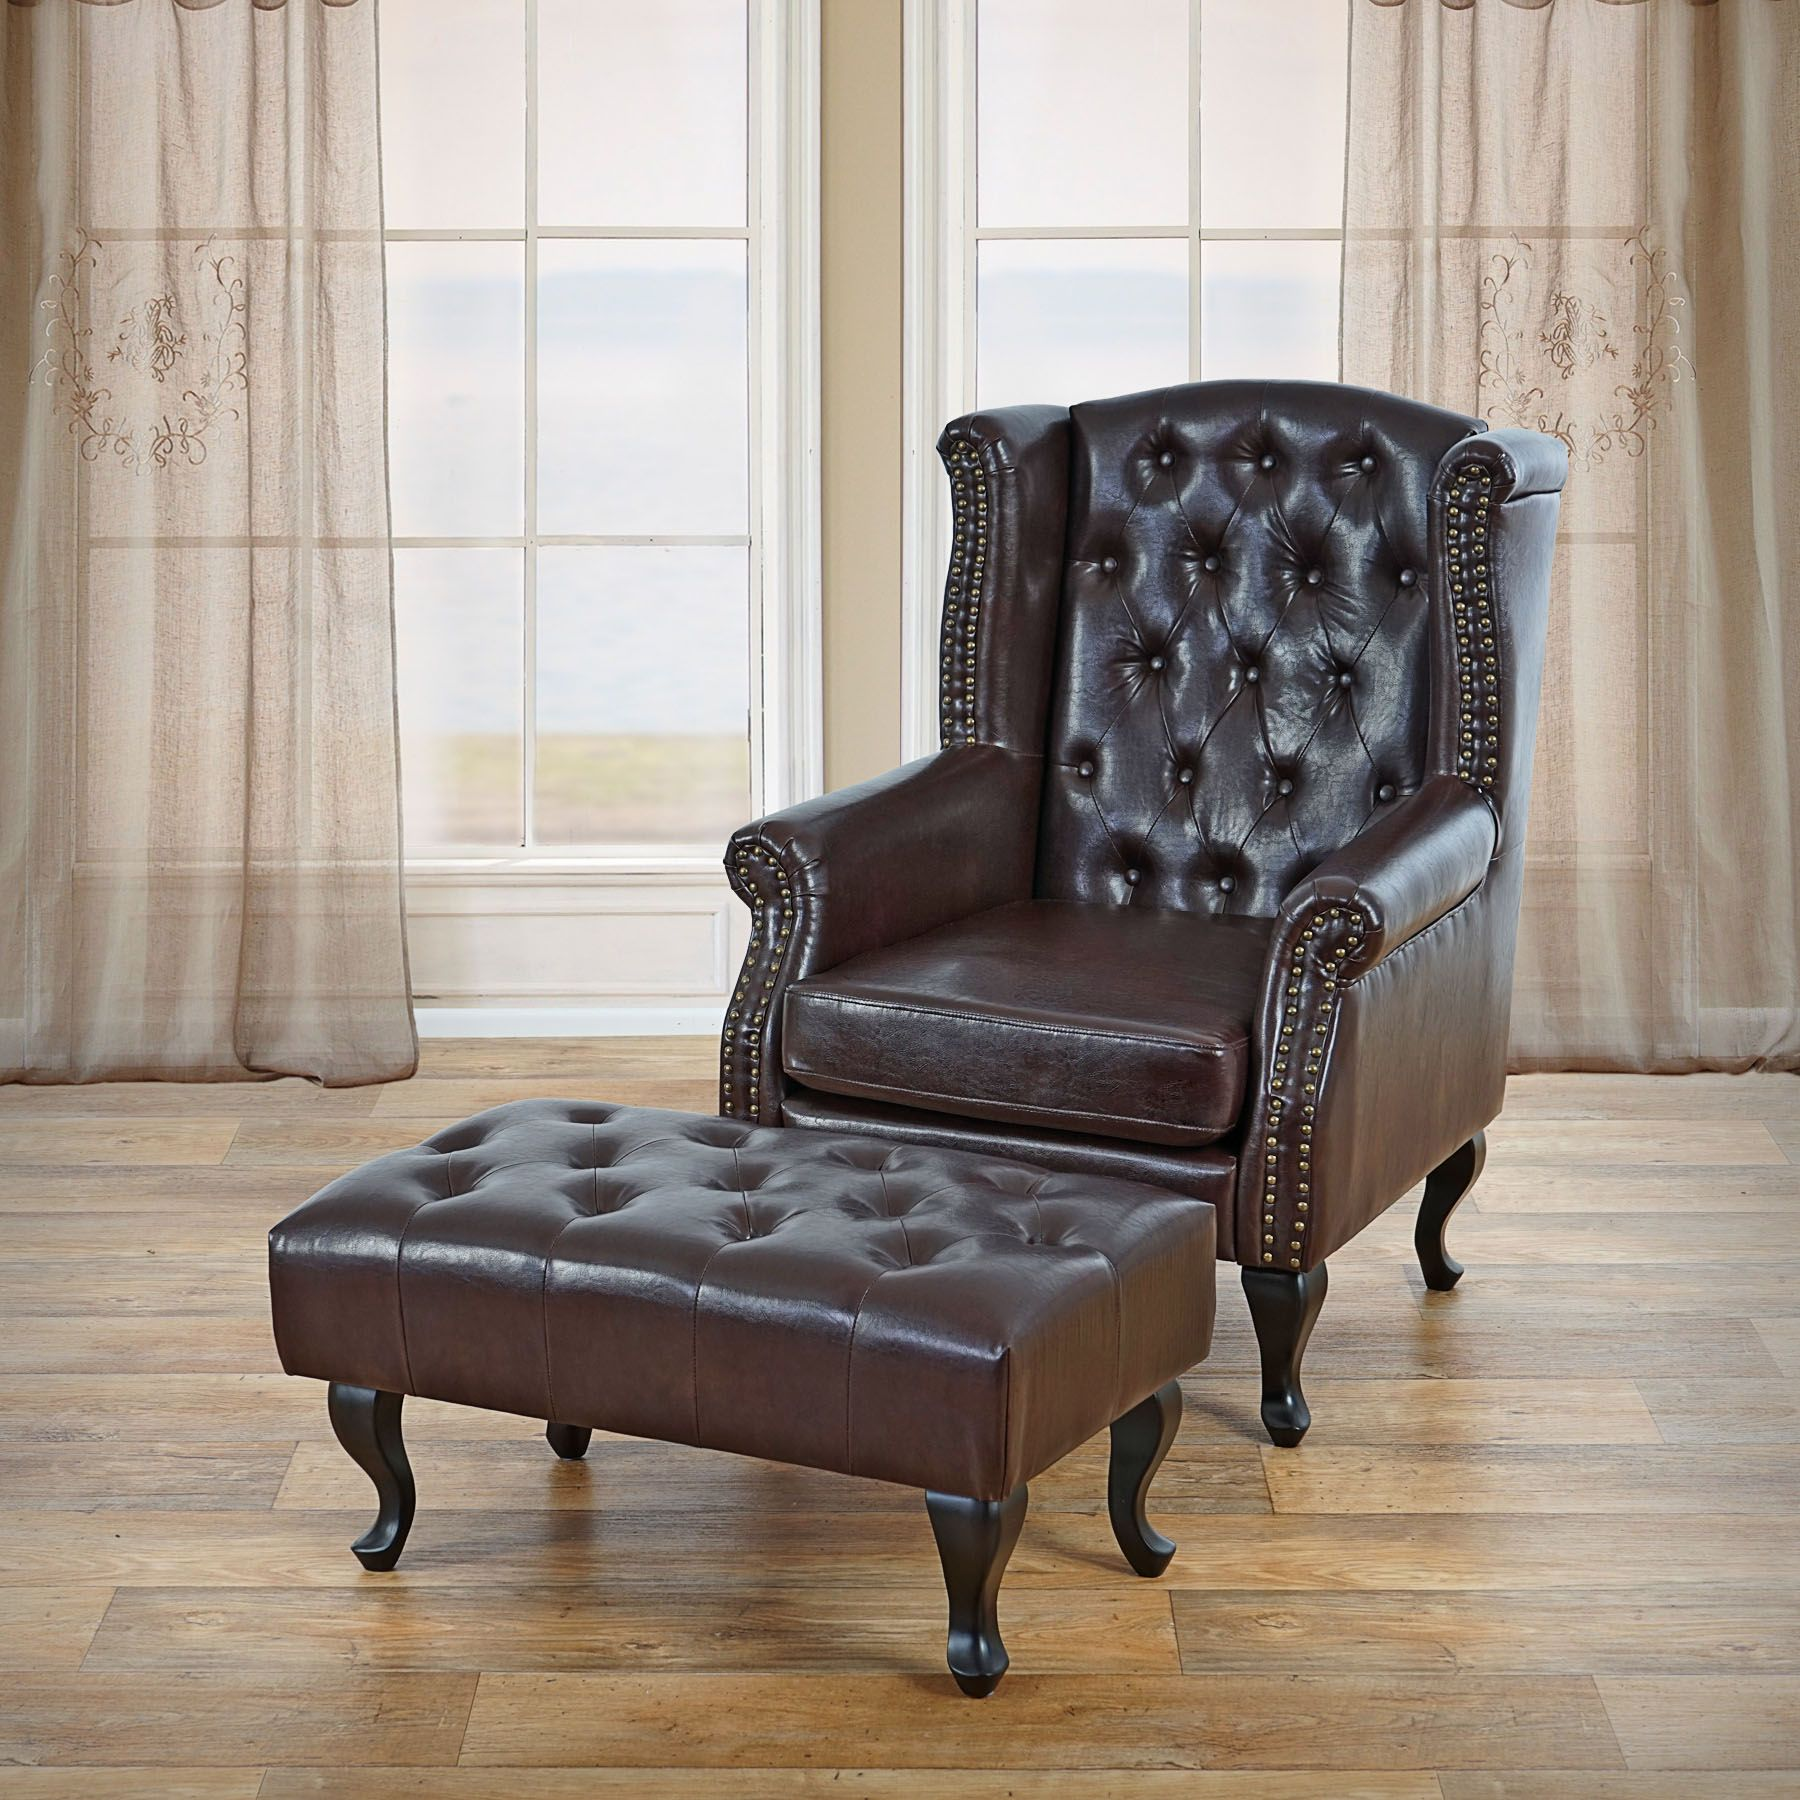 Chesterfield Clubsessel Sessel Relaxsessel Clubsessel Ohrensessel Chesterfield Kunstleder